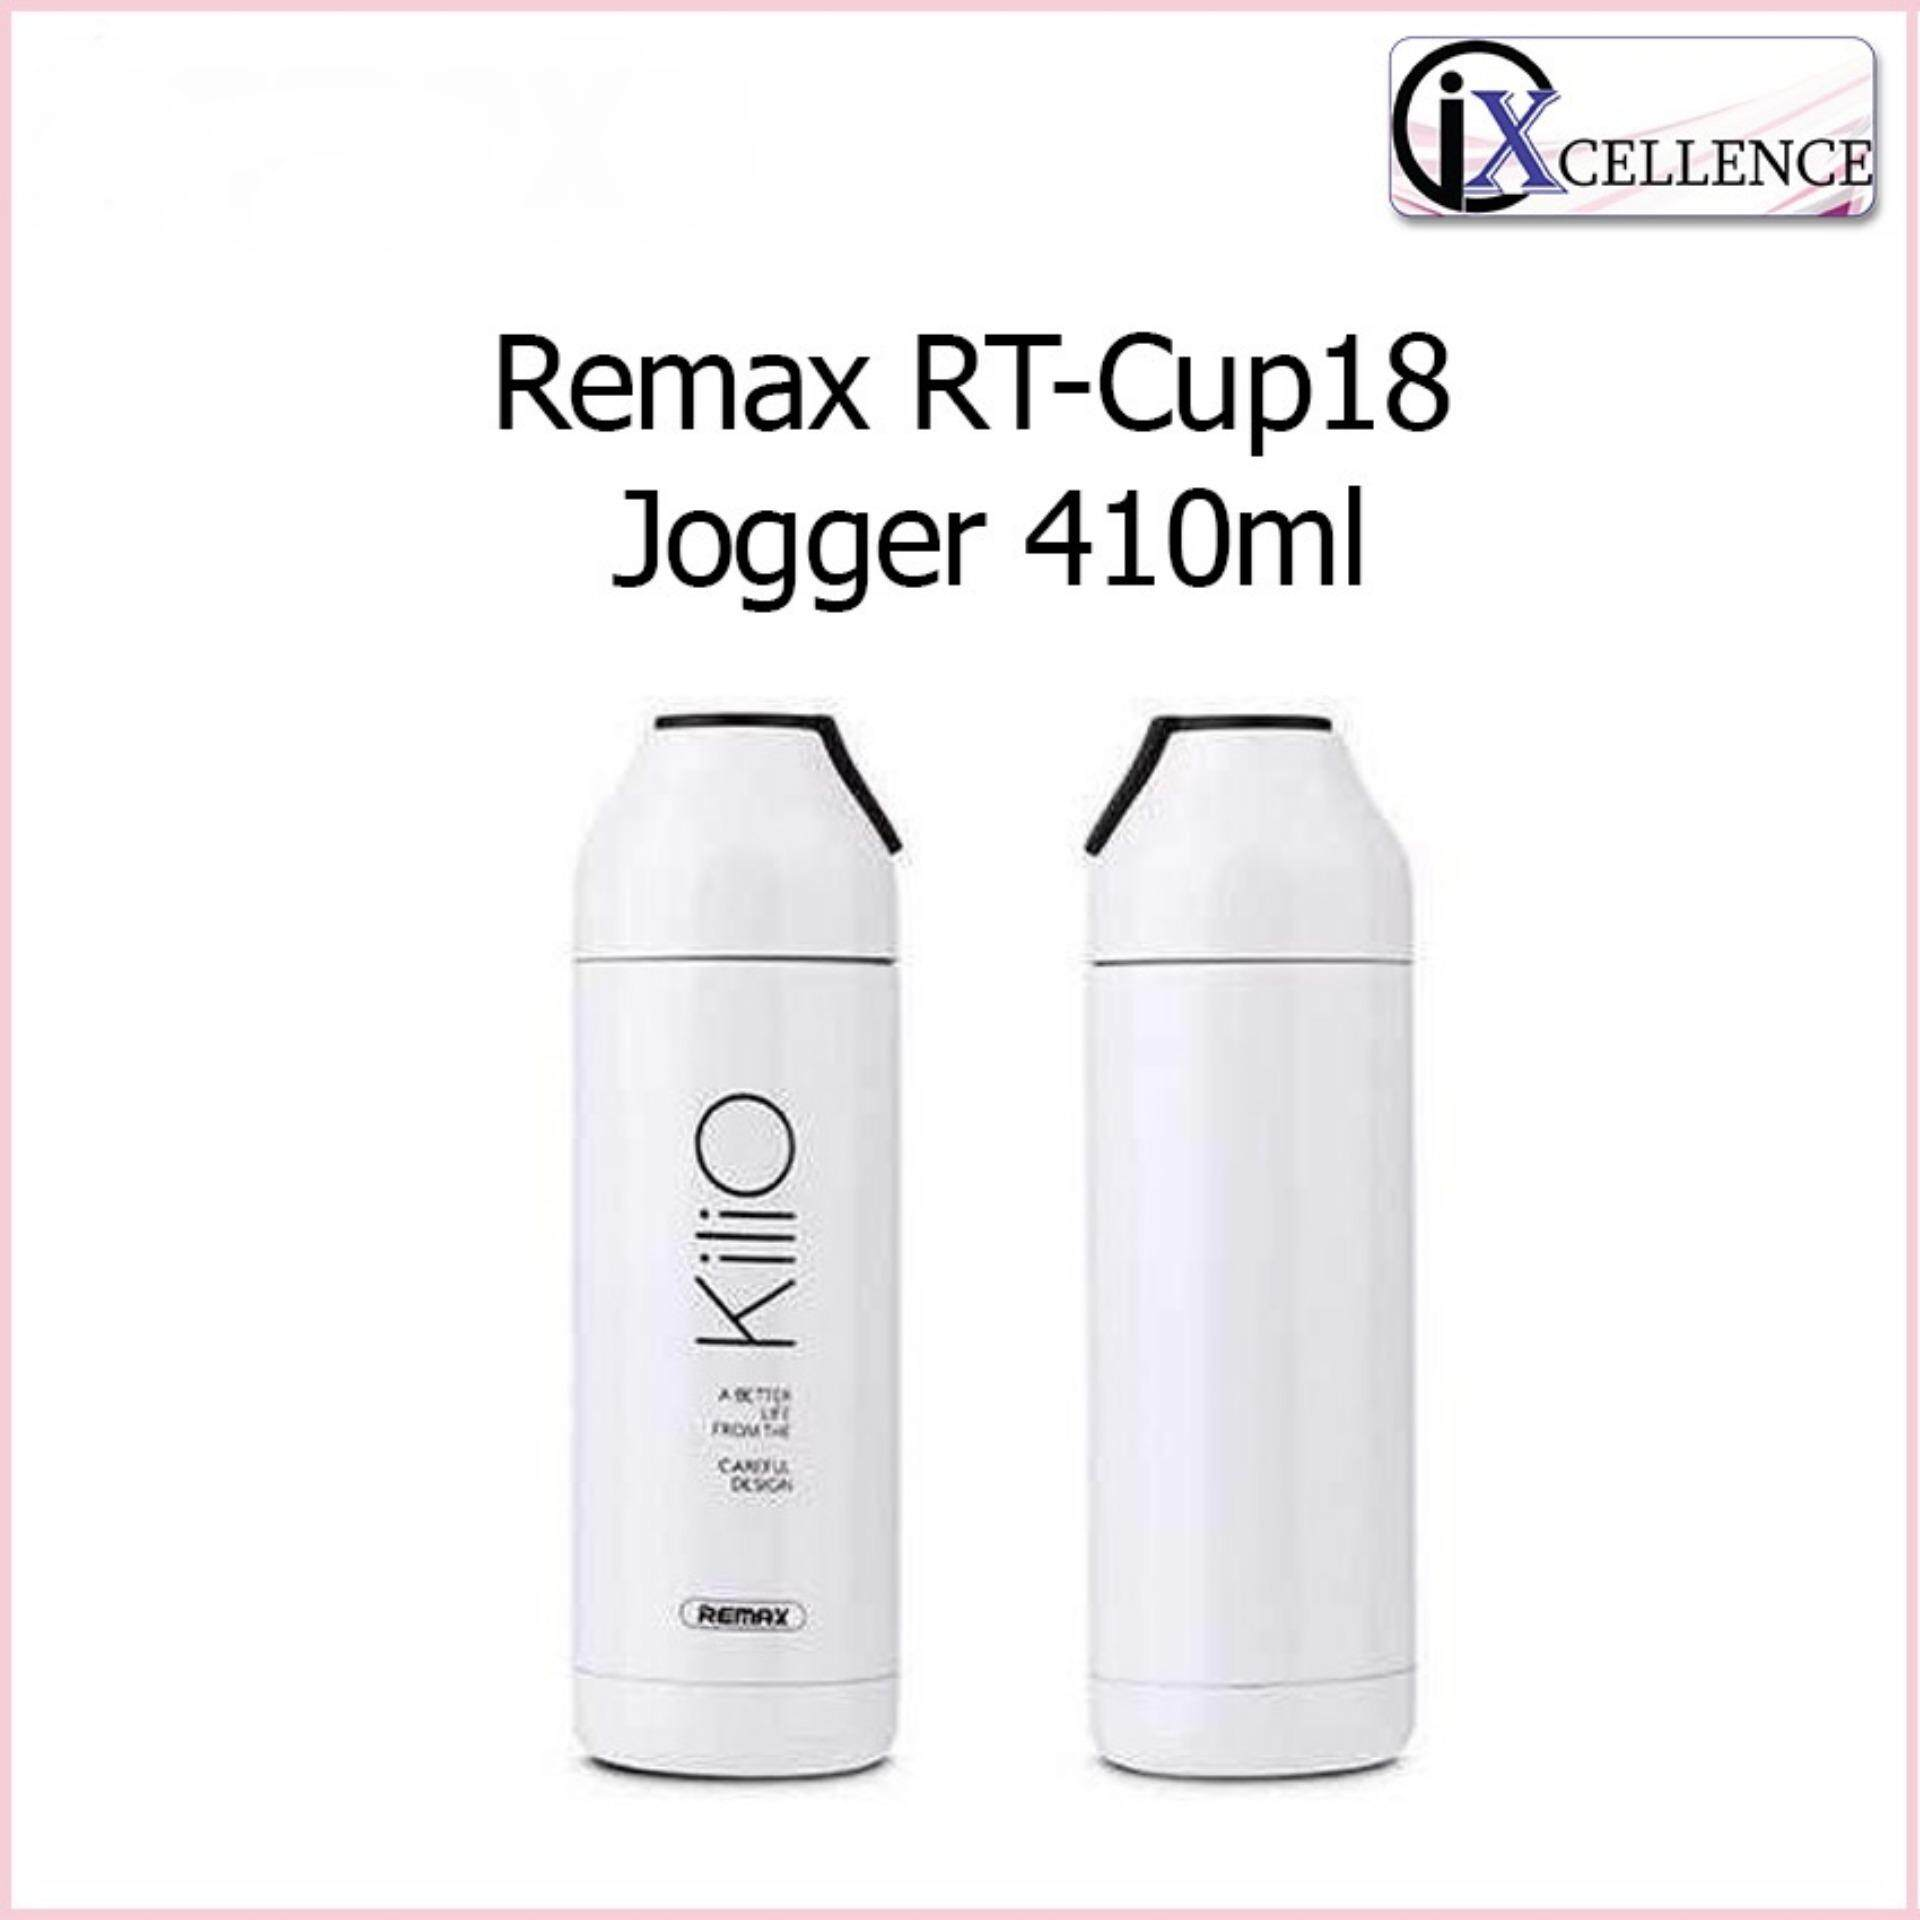 [IX] Remax RT-Cup18 Jogger 410ml (White)